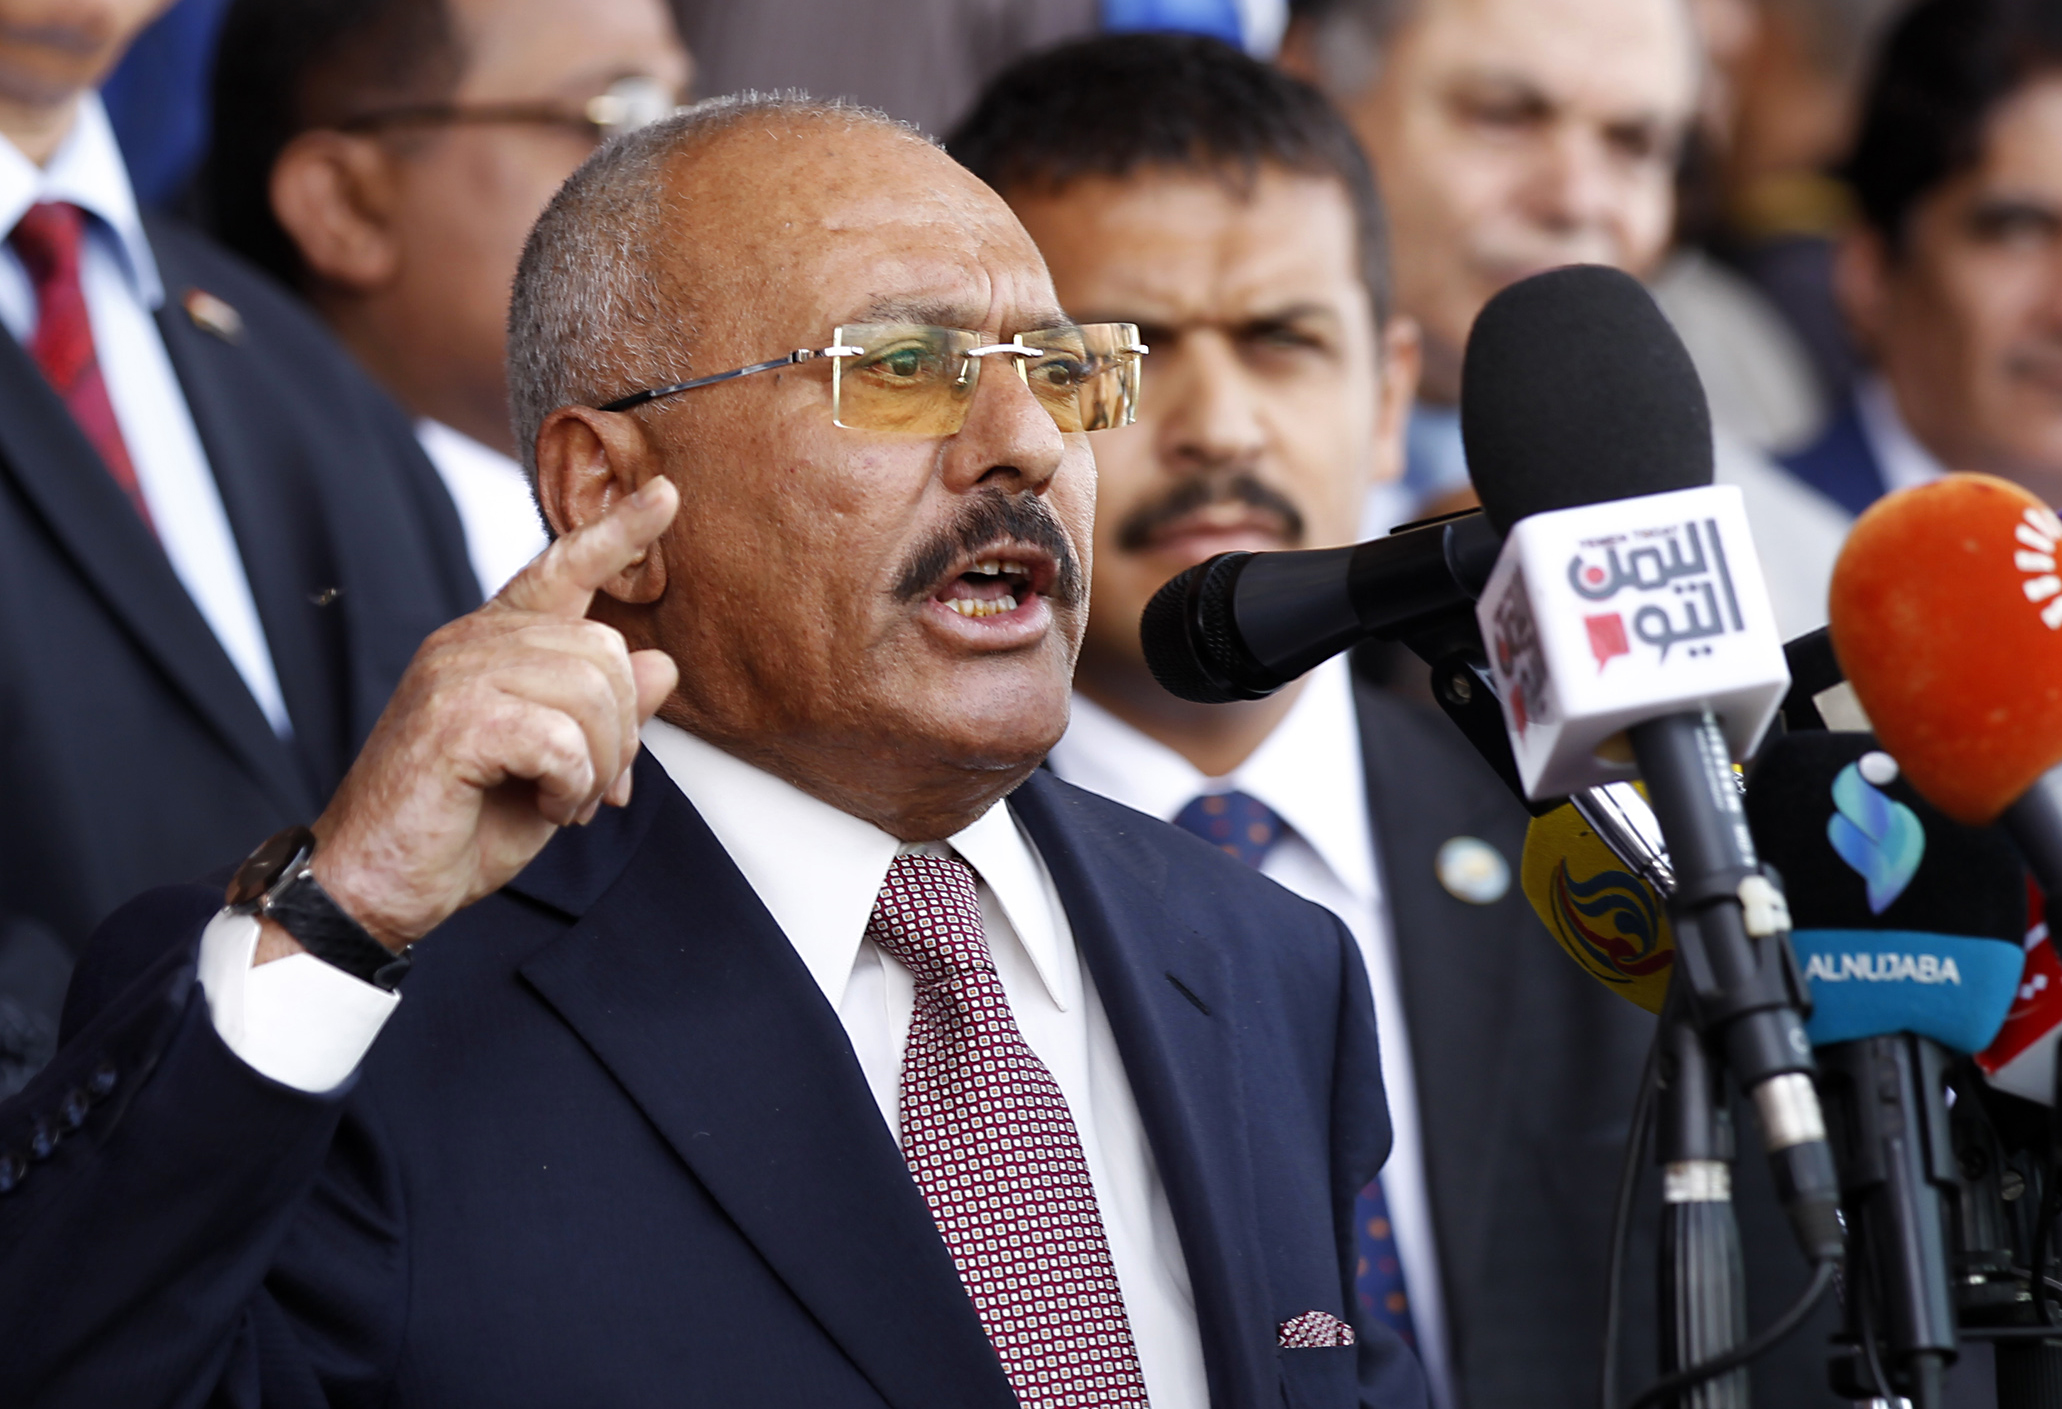 Yemen's ex-president Ali Abdullah Saleh gives a speech addressing his supporters during a rally as his General People's Congress party, marks 35 years since its founding, at Sabaeen Square in the capital Sanaa on Aug. 24, 2017. (Credit: MOHAMMED HUWAIS/AFP/Getty Images)